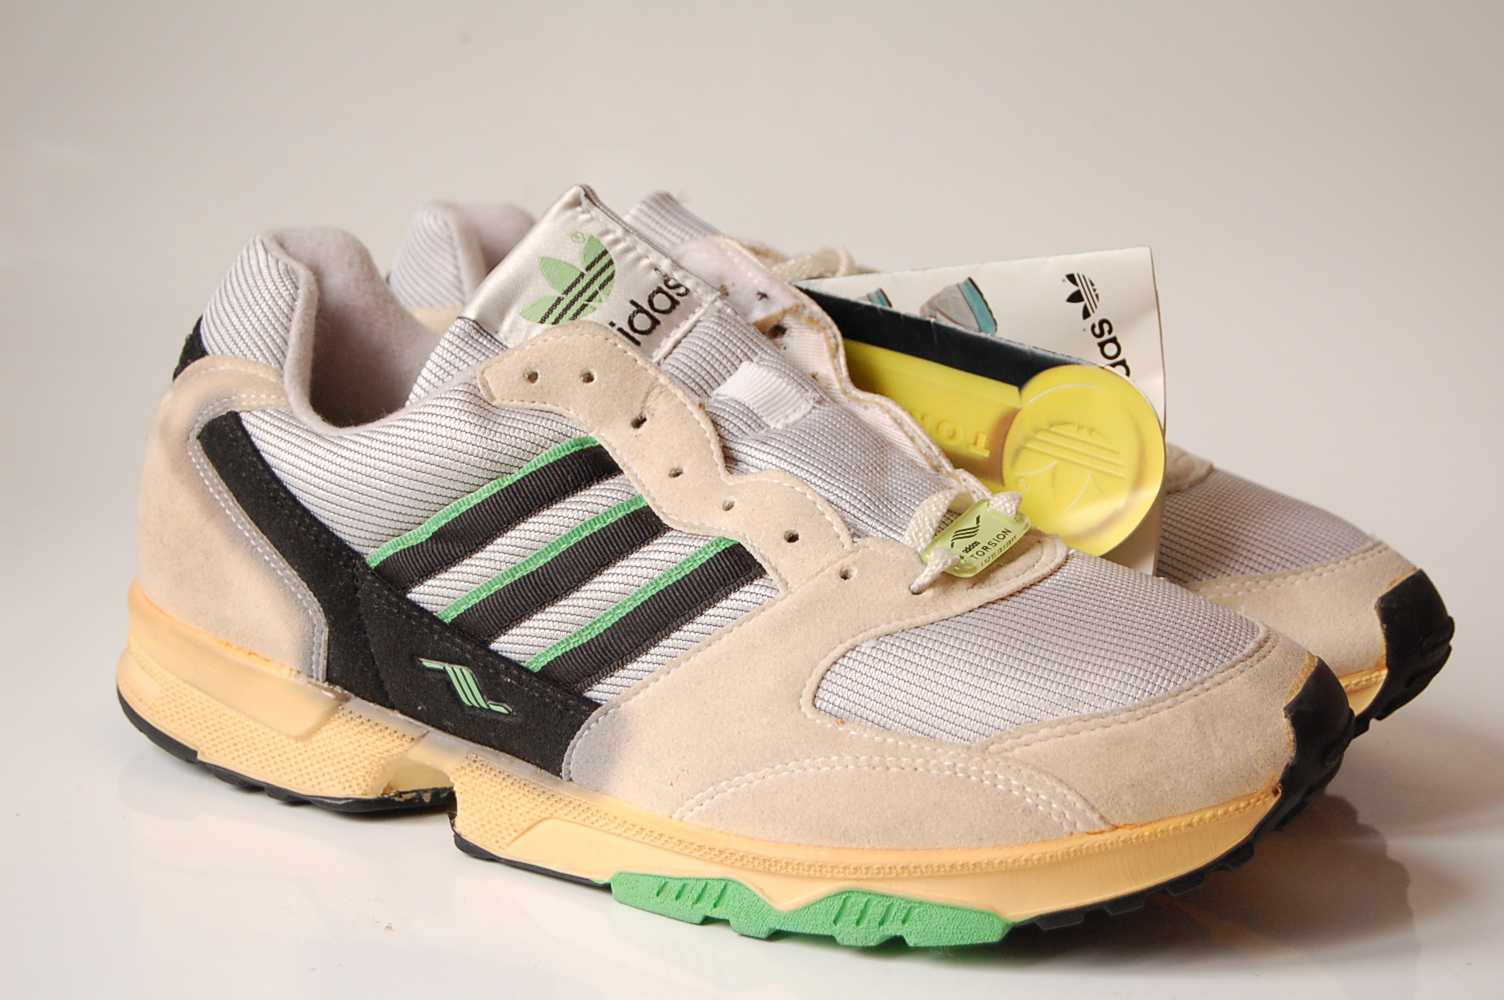 Running Adidas Torsion Shoes adidas Annee 1990 WIYb2eDHE9